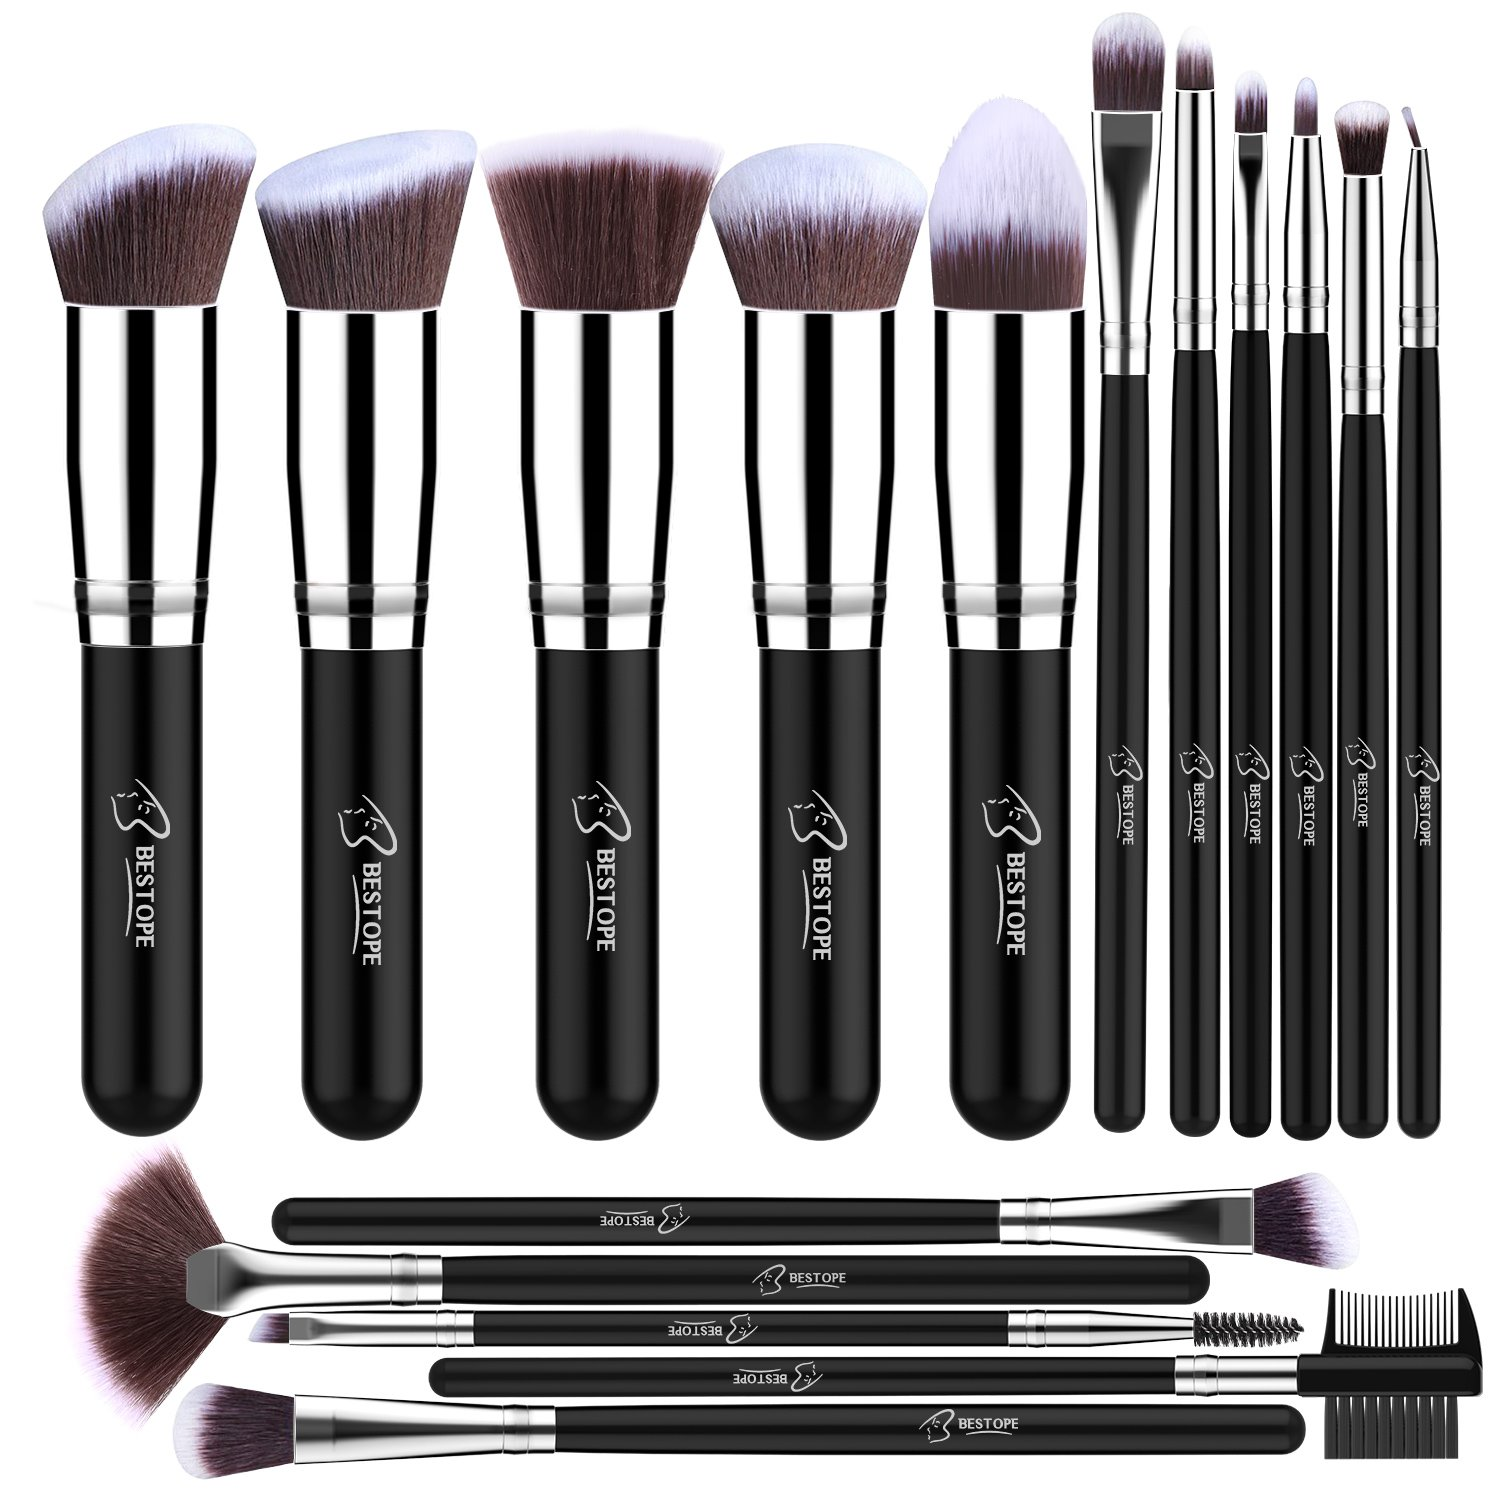 BESTOPE Makeup Brushes 16 PCs Makeup Brush Set Premium Synthetic Foundation Brush Blending Face Powder Blush Concealers Eye Shadows Make Up Brushes Kit (Sliver)